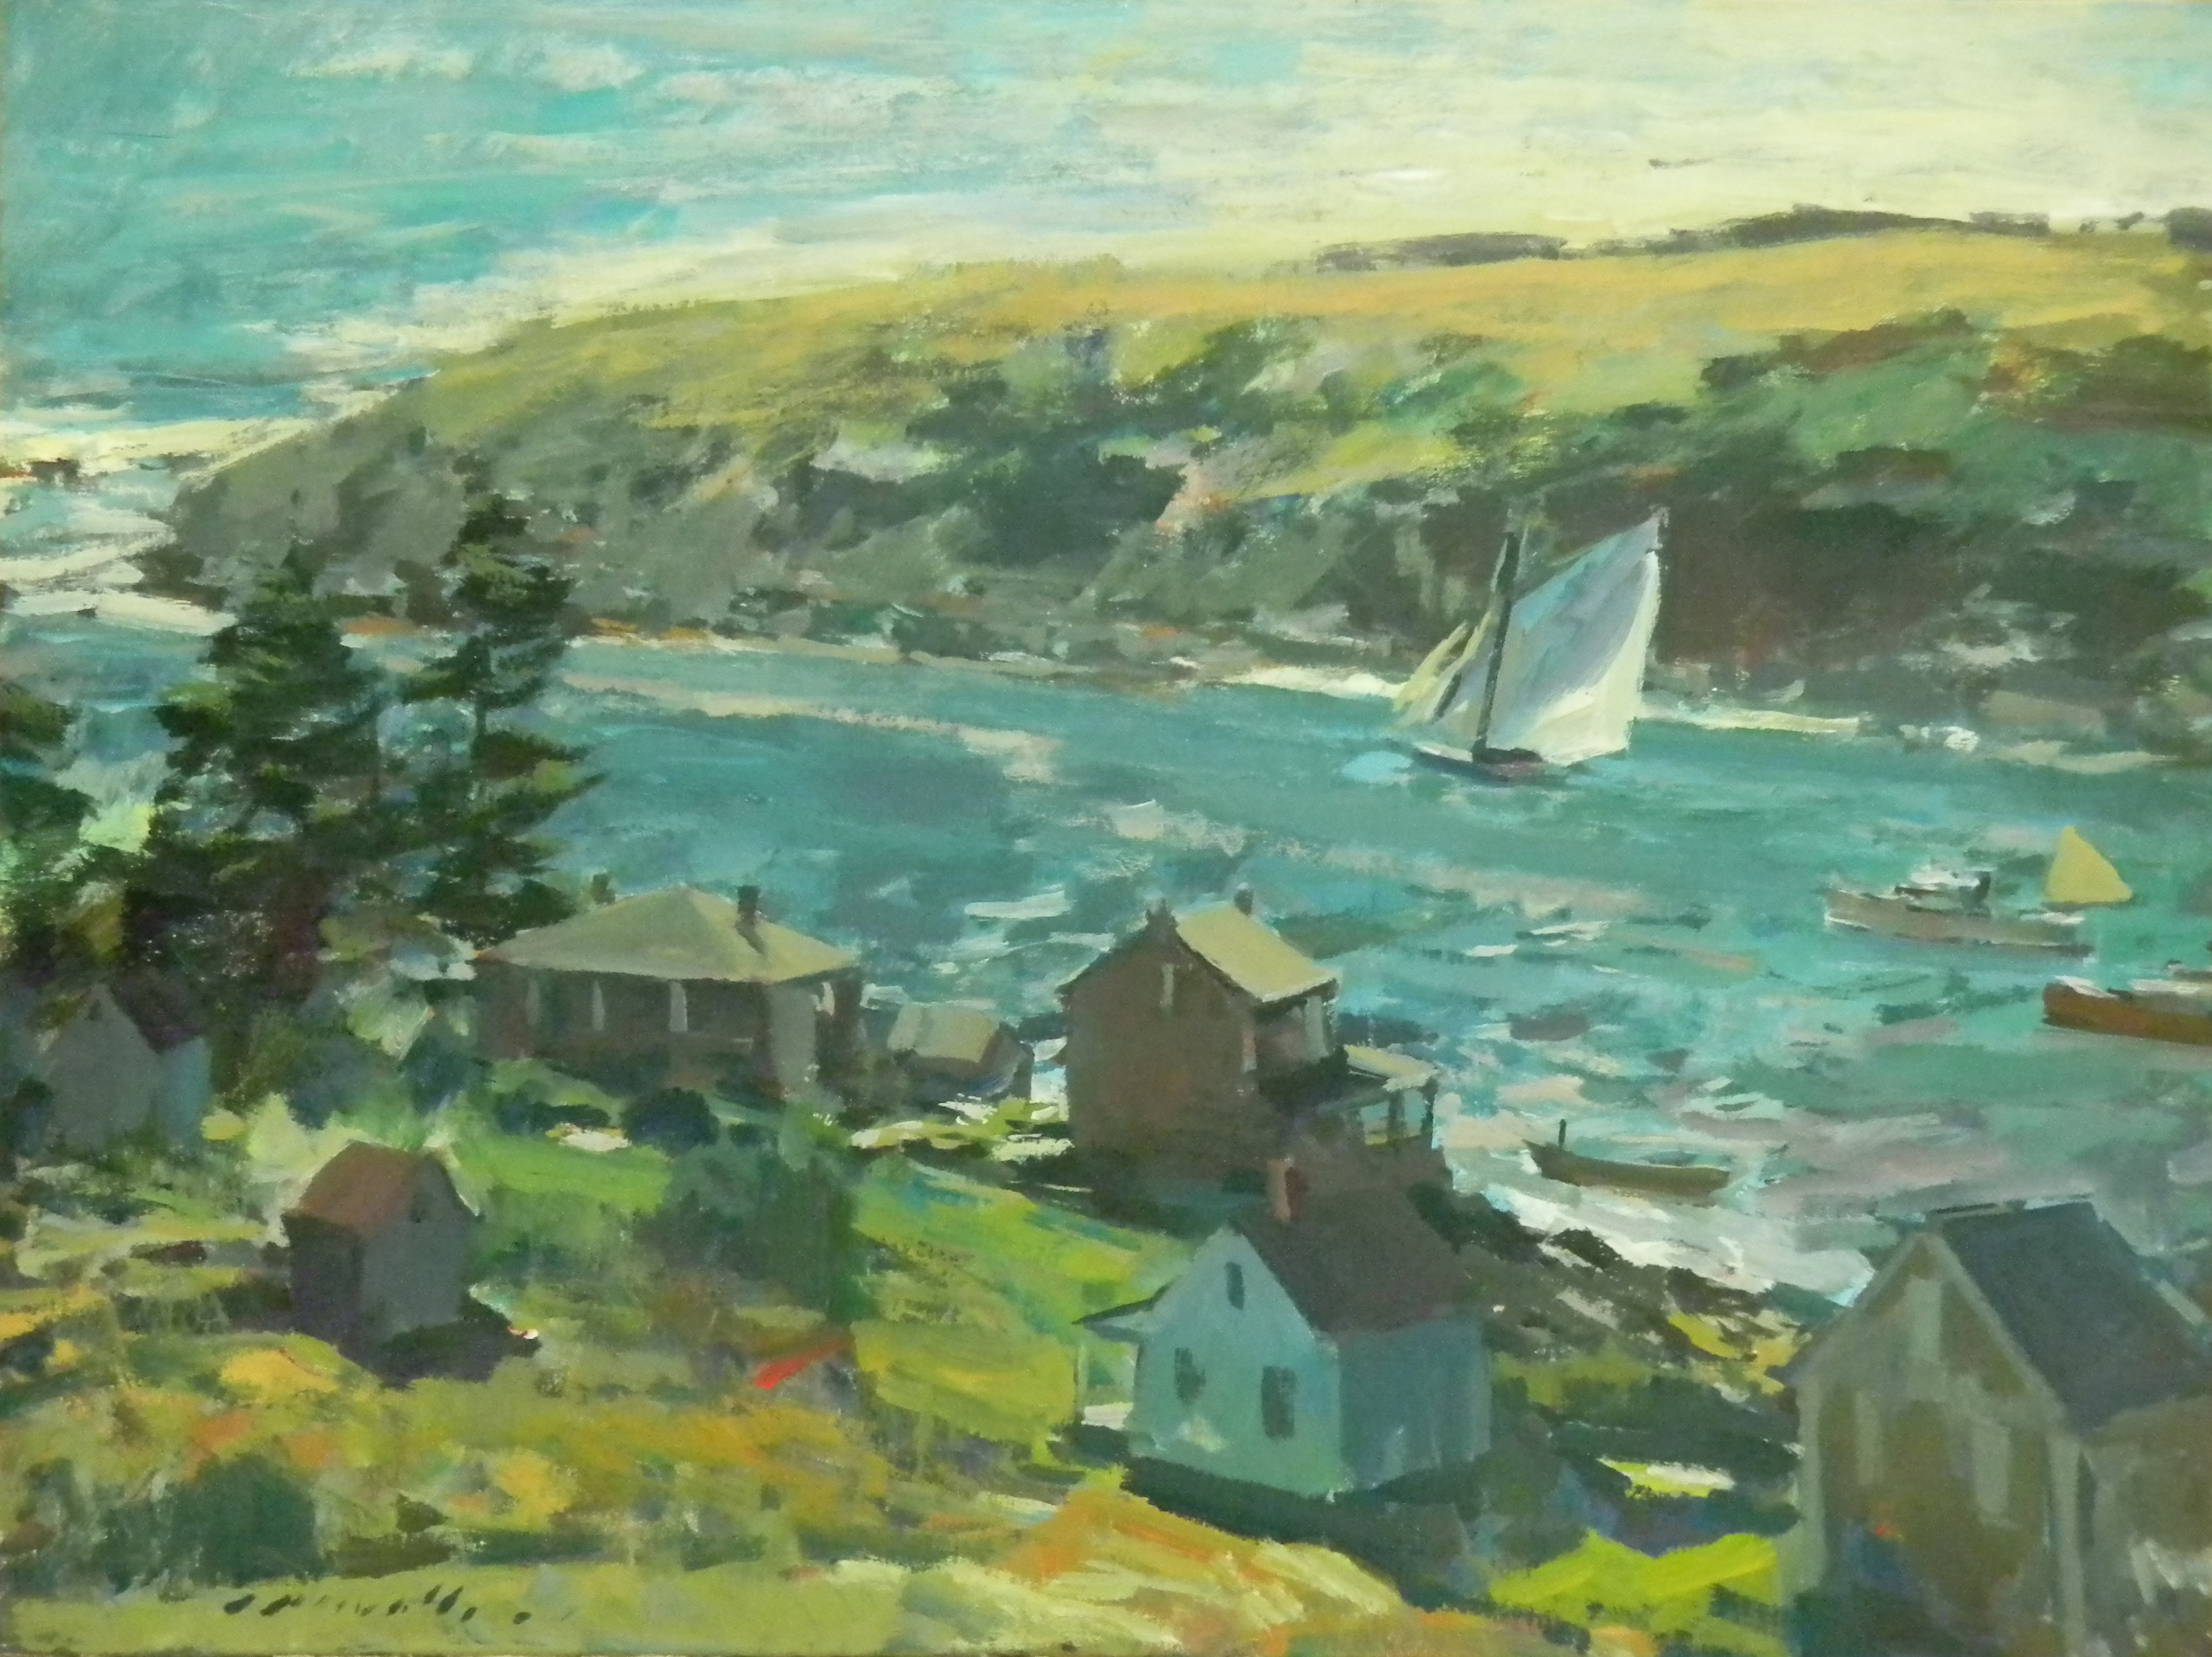 Charles Movalli, Walls Gallery, The Greenbrier, Monhegan